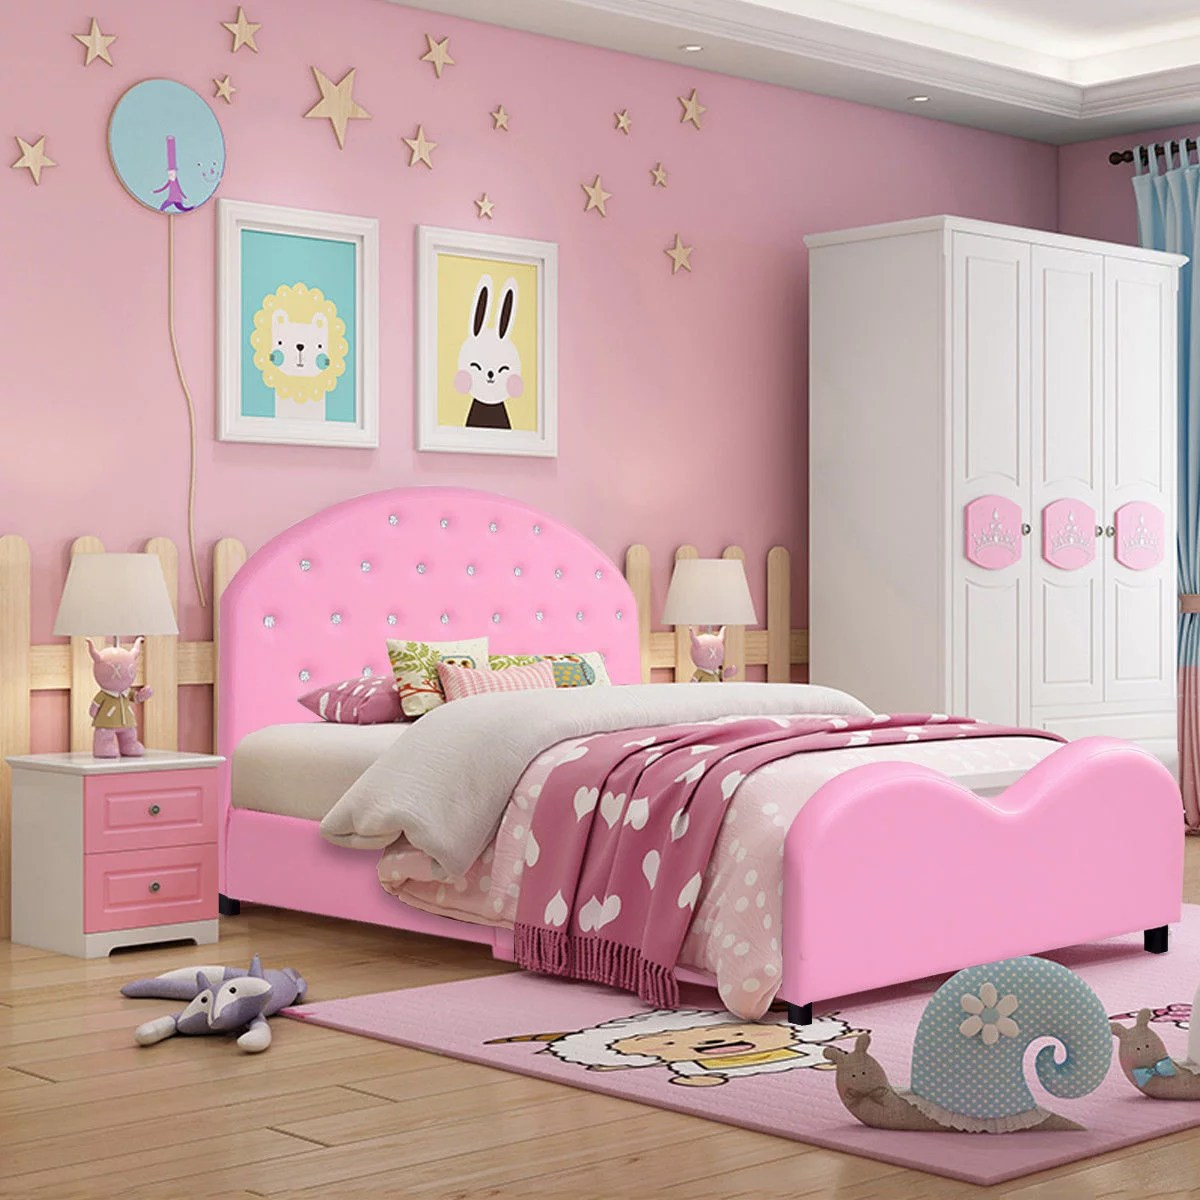 Costway Kids Children Pu Upholstered Platform Wooden Princess Bed Bedroom Furniture Pink Walmart Com Walmart Com